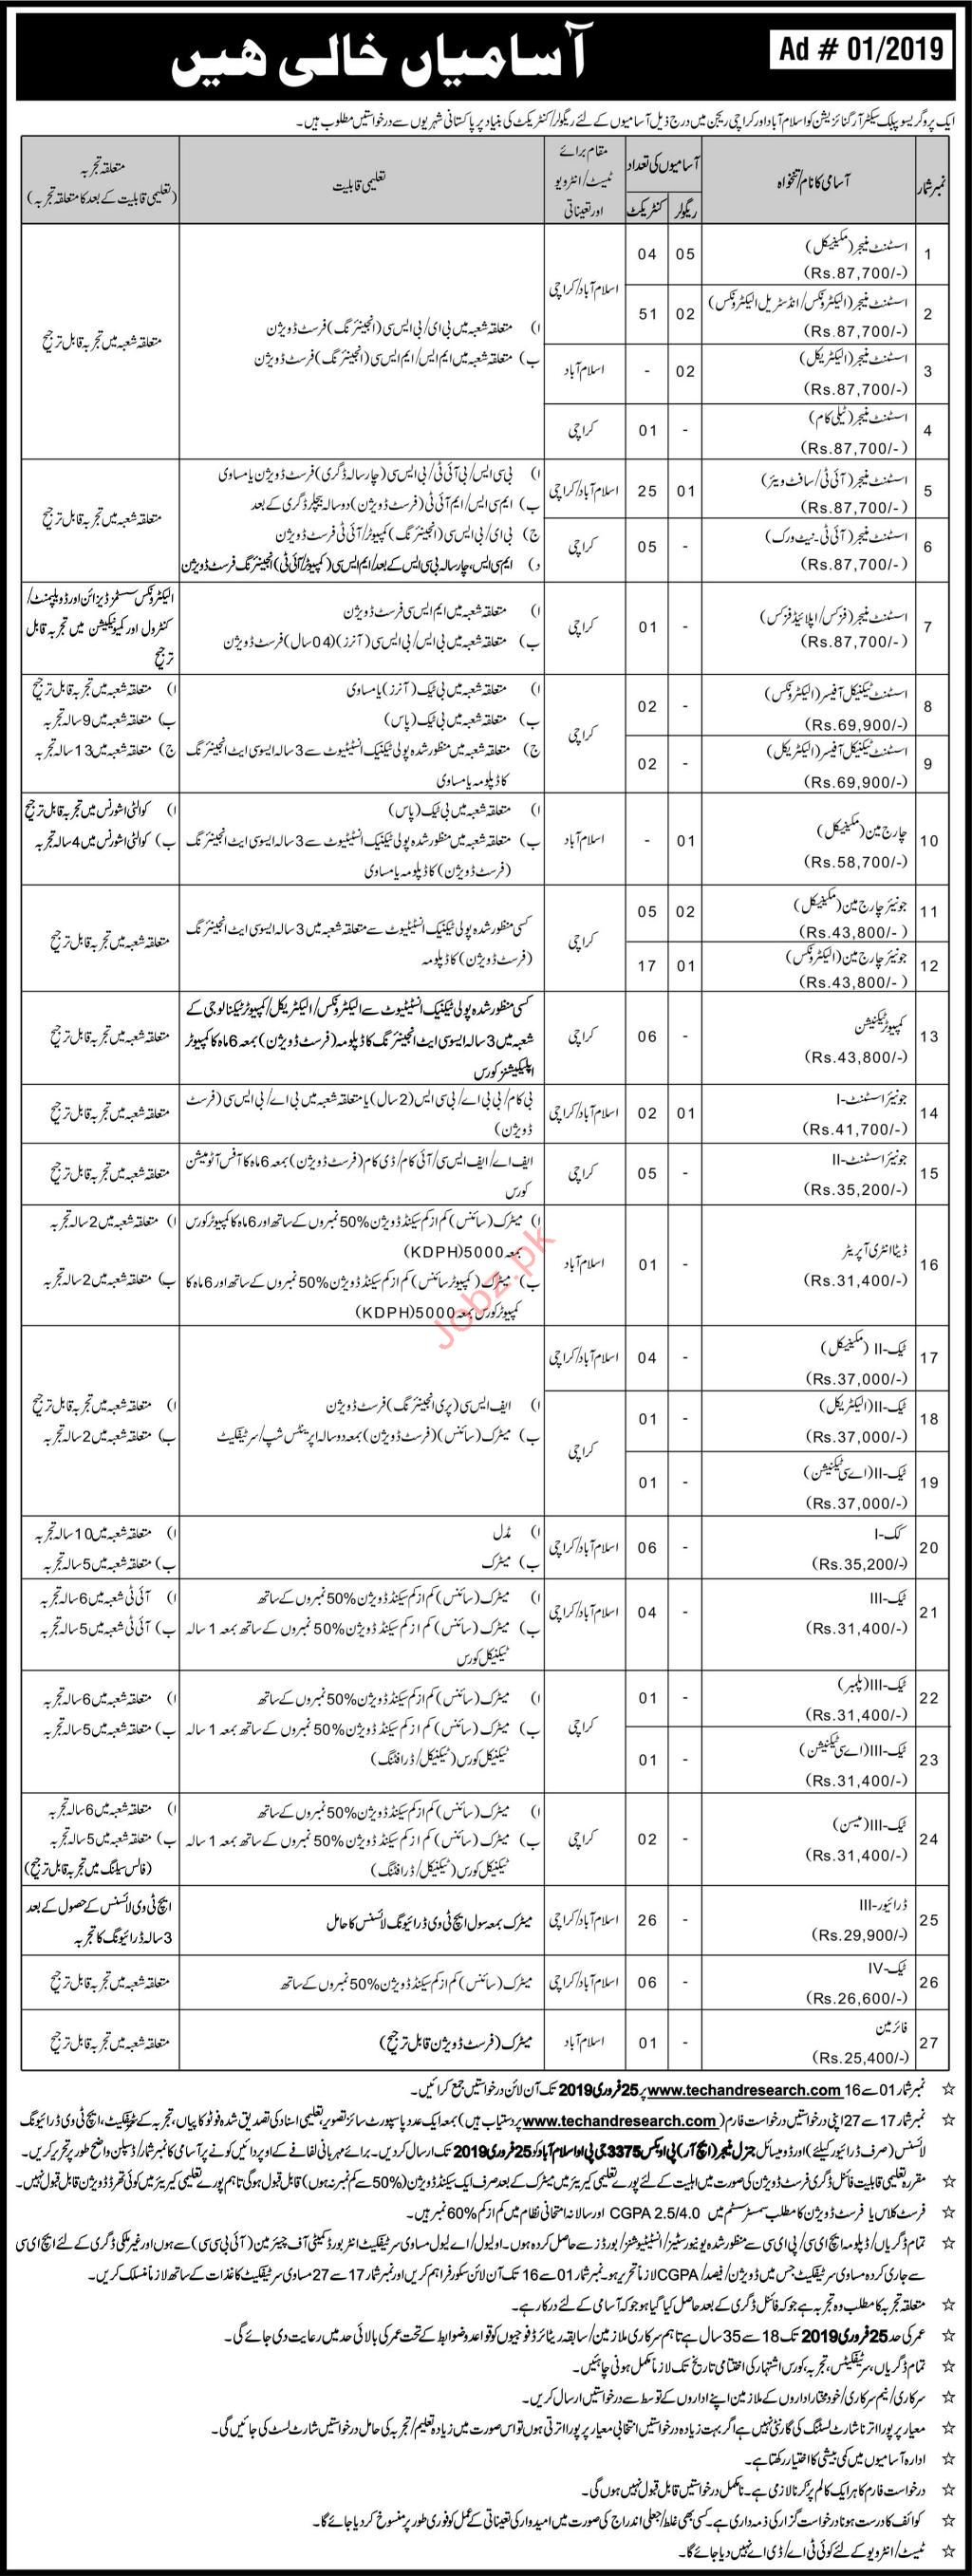 Public Sector Organization Management Jobs 2019